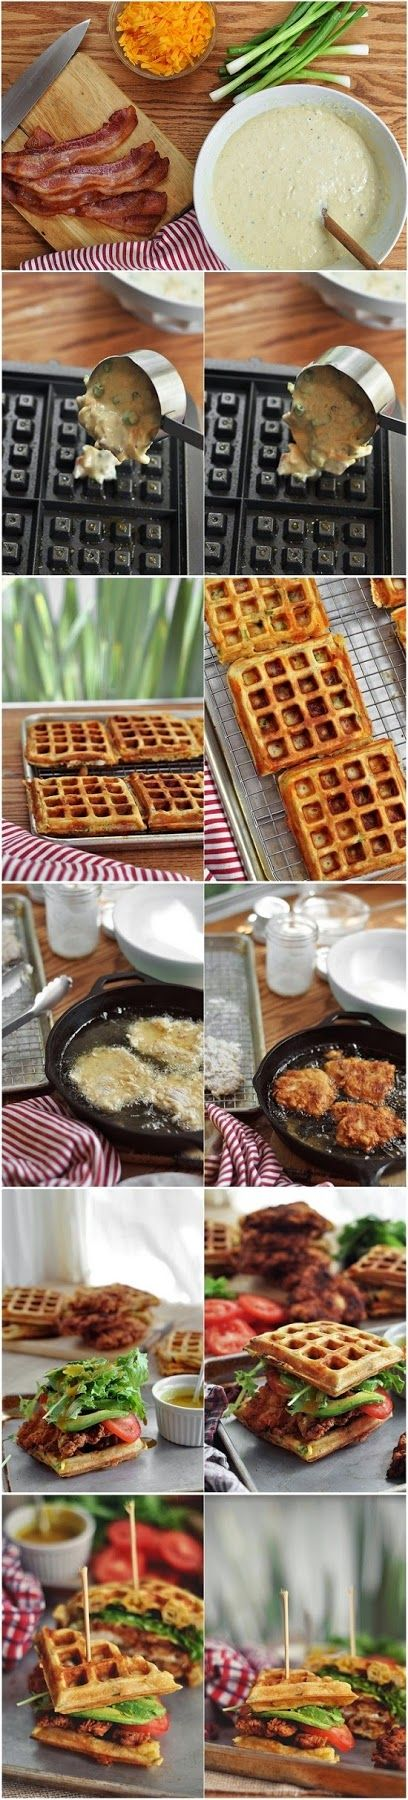 How To Make Fried Chicken and Waffle Sandwiches